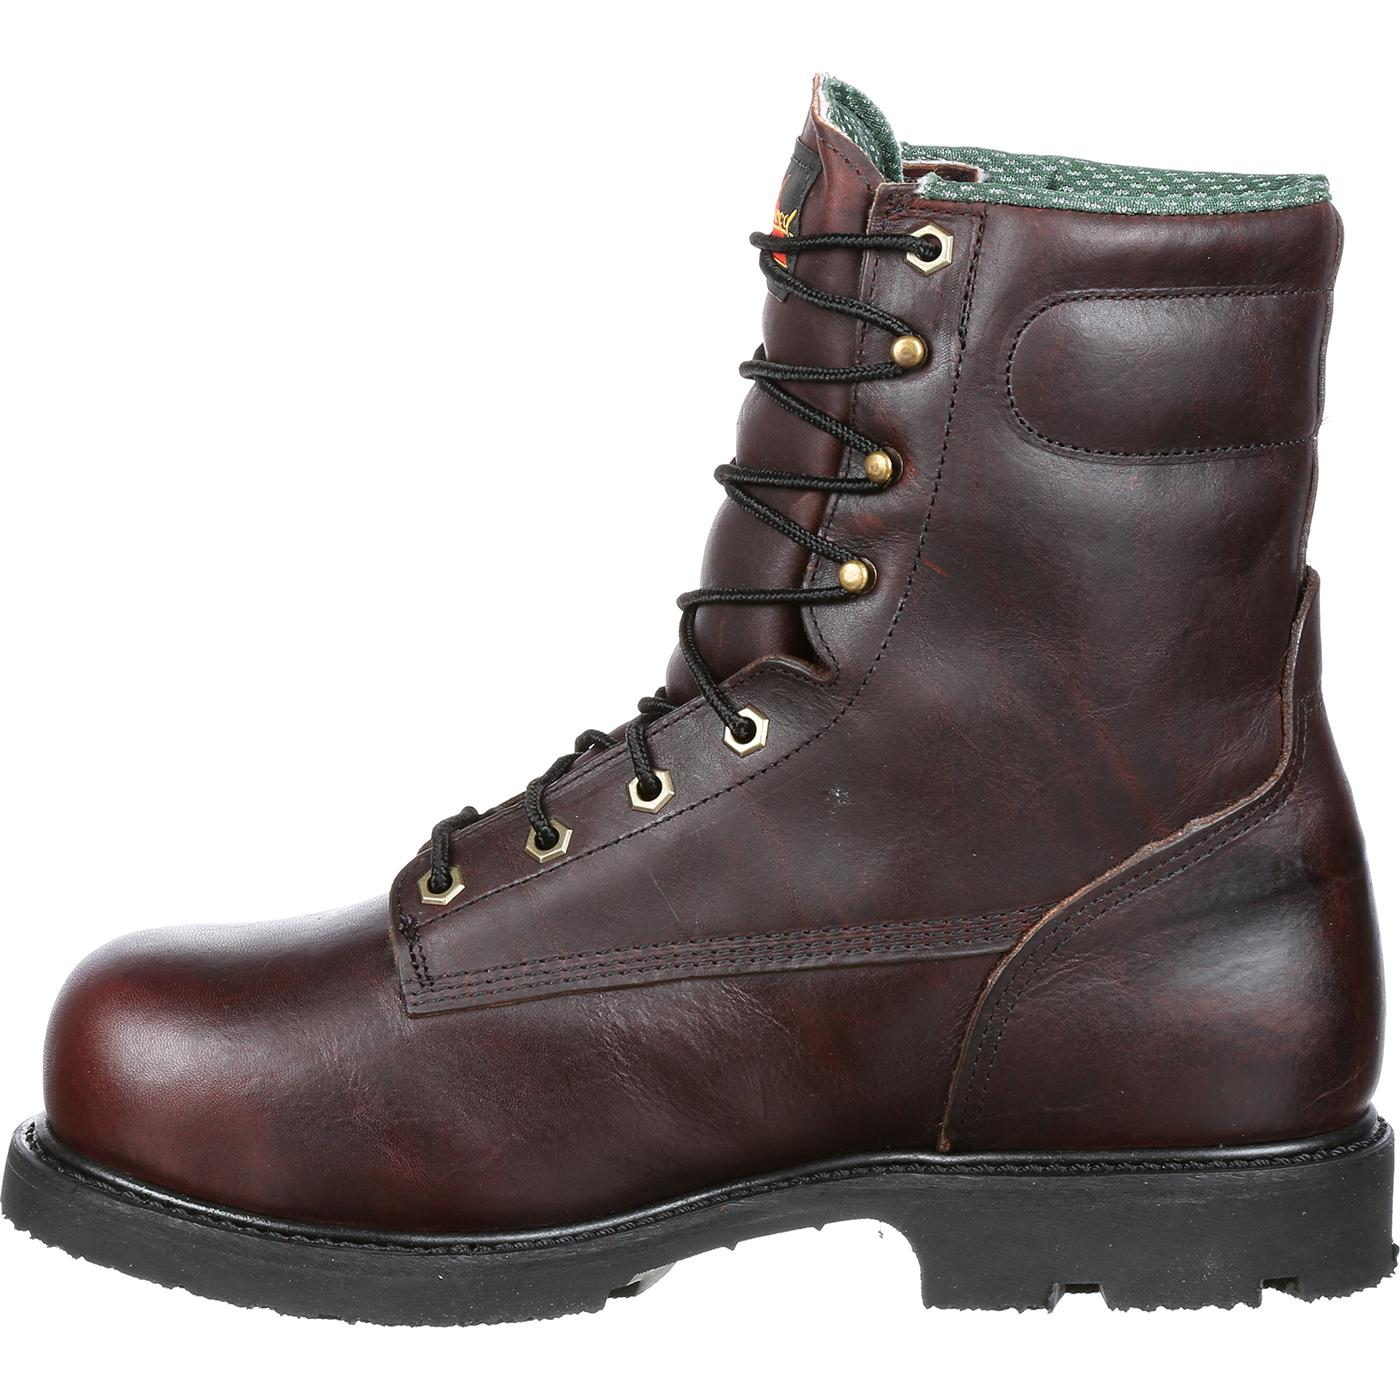 Lehigh Safety Shoes Steel Toe Metatarsal Work Boots